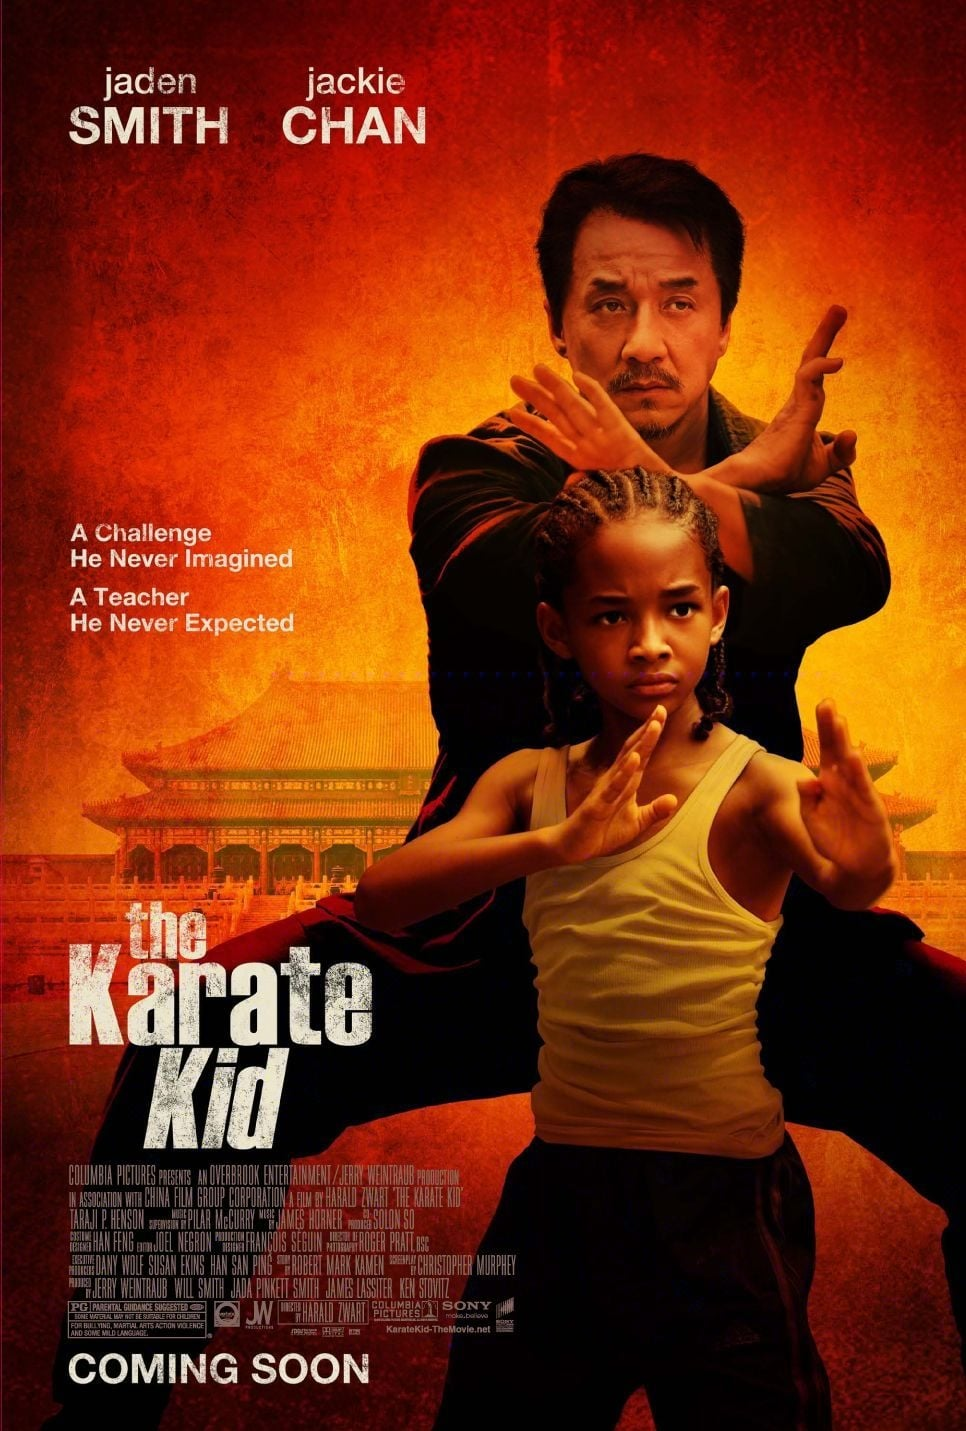 Karate vaikis / The Karate Kid (2010)